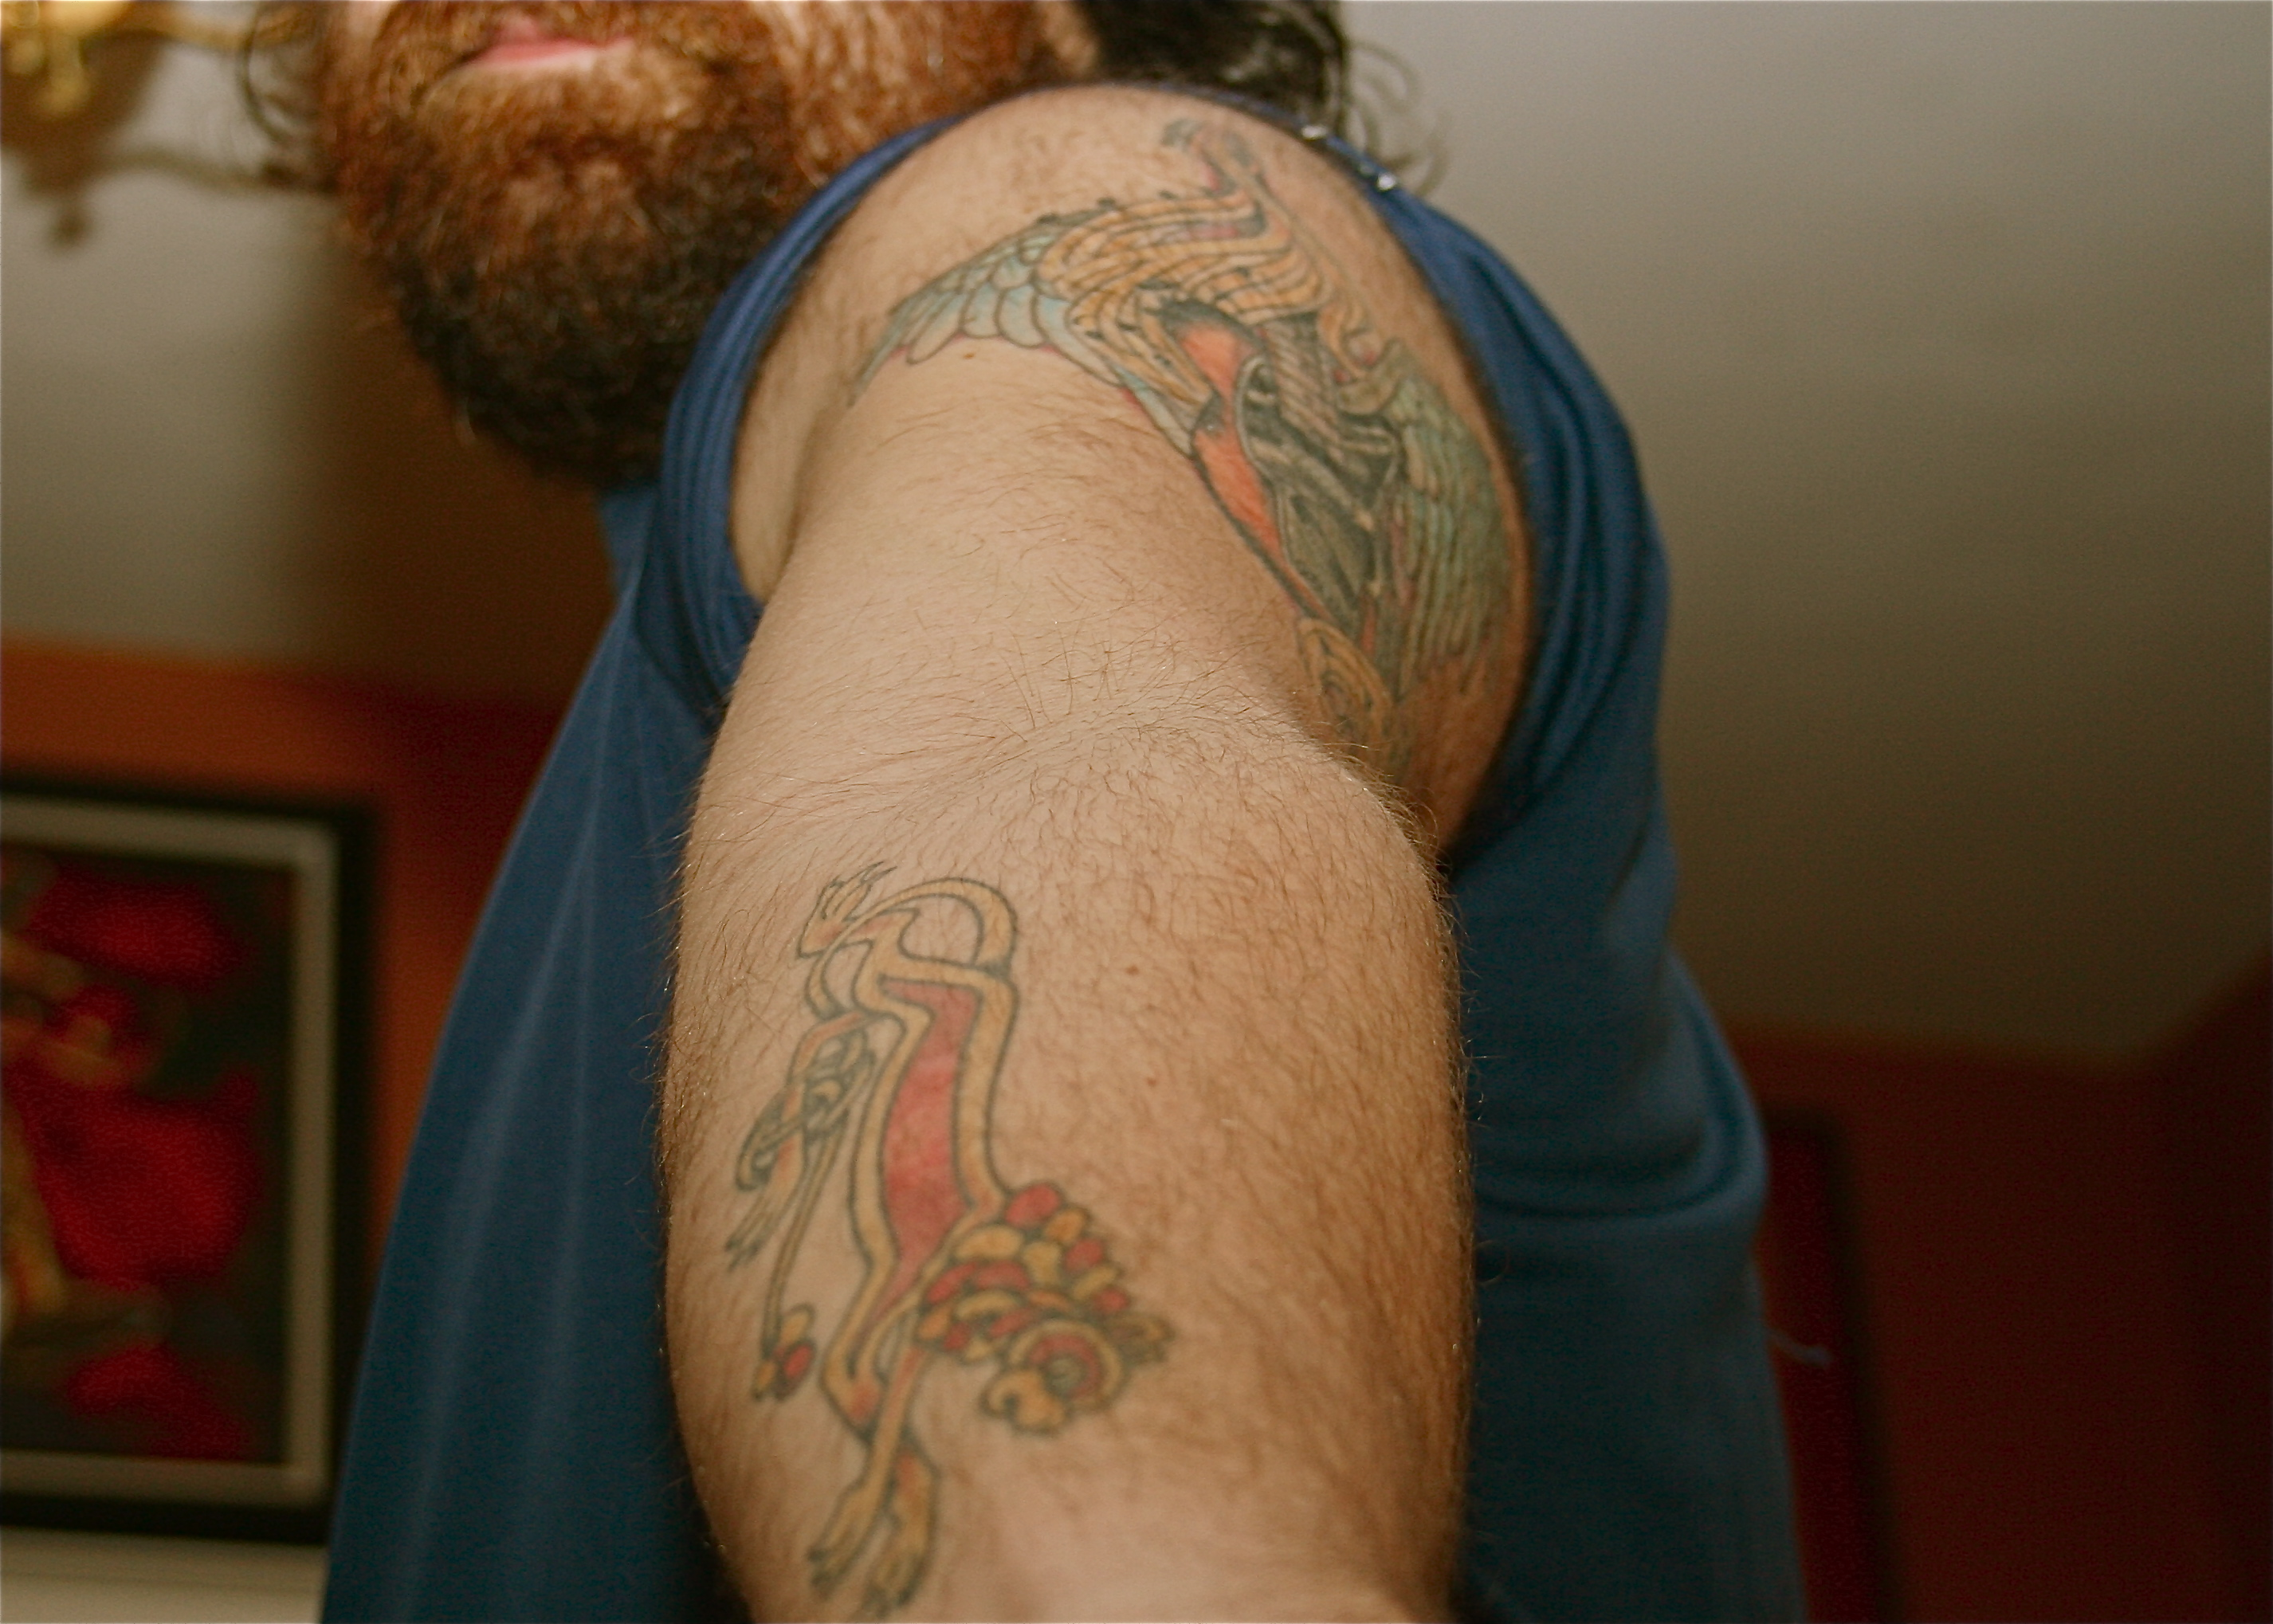 91657d7a6b0ac my two favorite tattoos - my forearm is a celtic lion for my son Leo, and  the upper arm is my first guitar - a telecaster that my wife bought me. it  ...